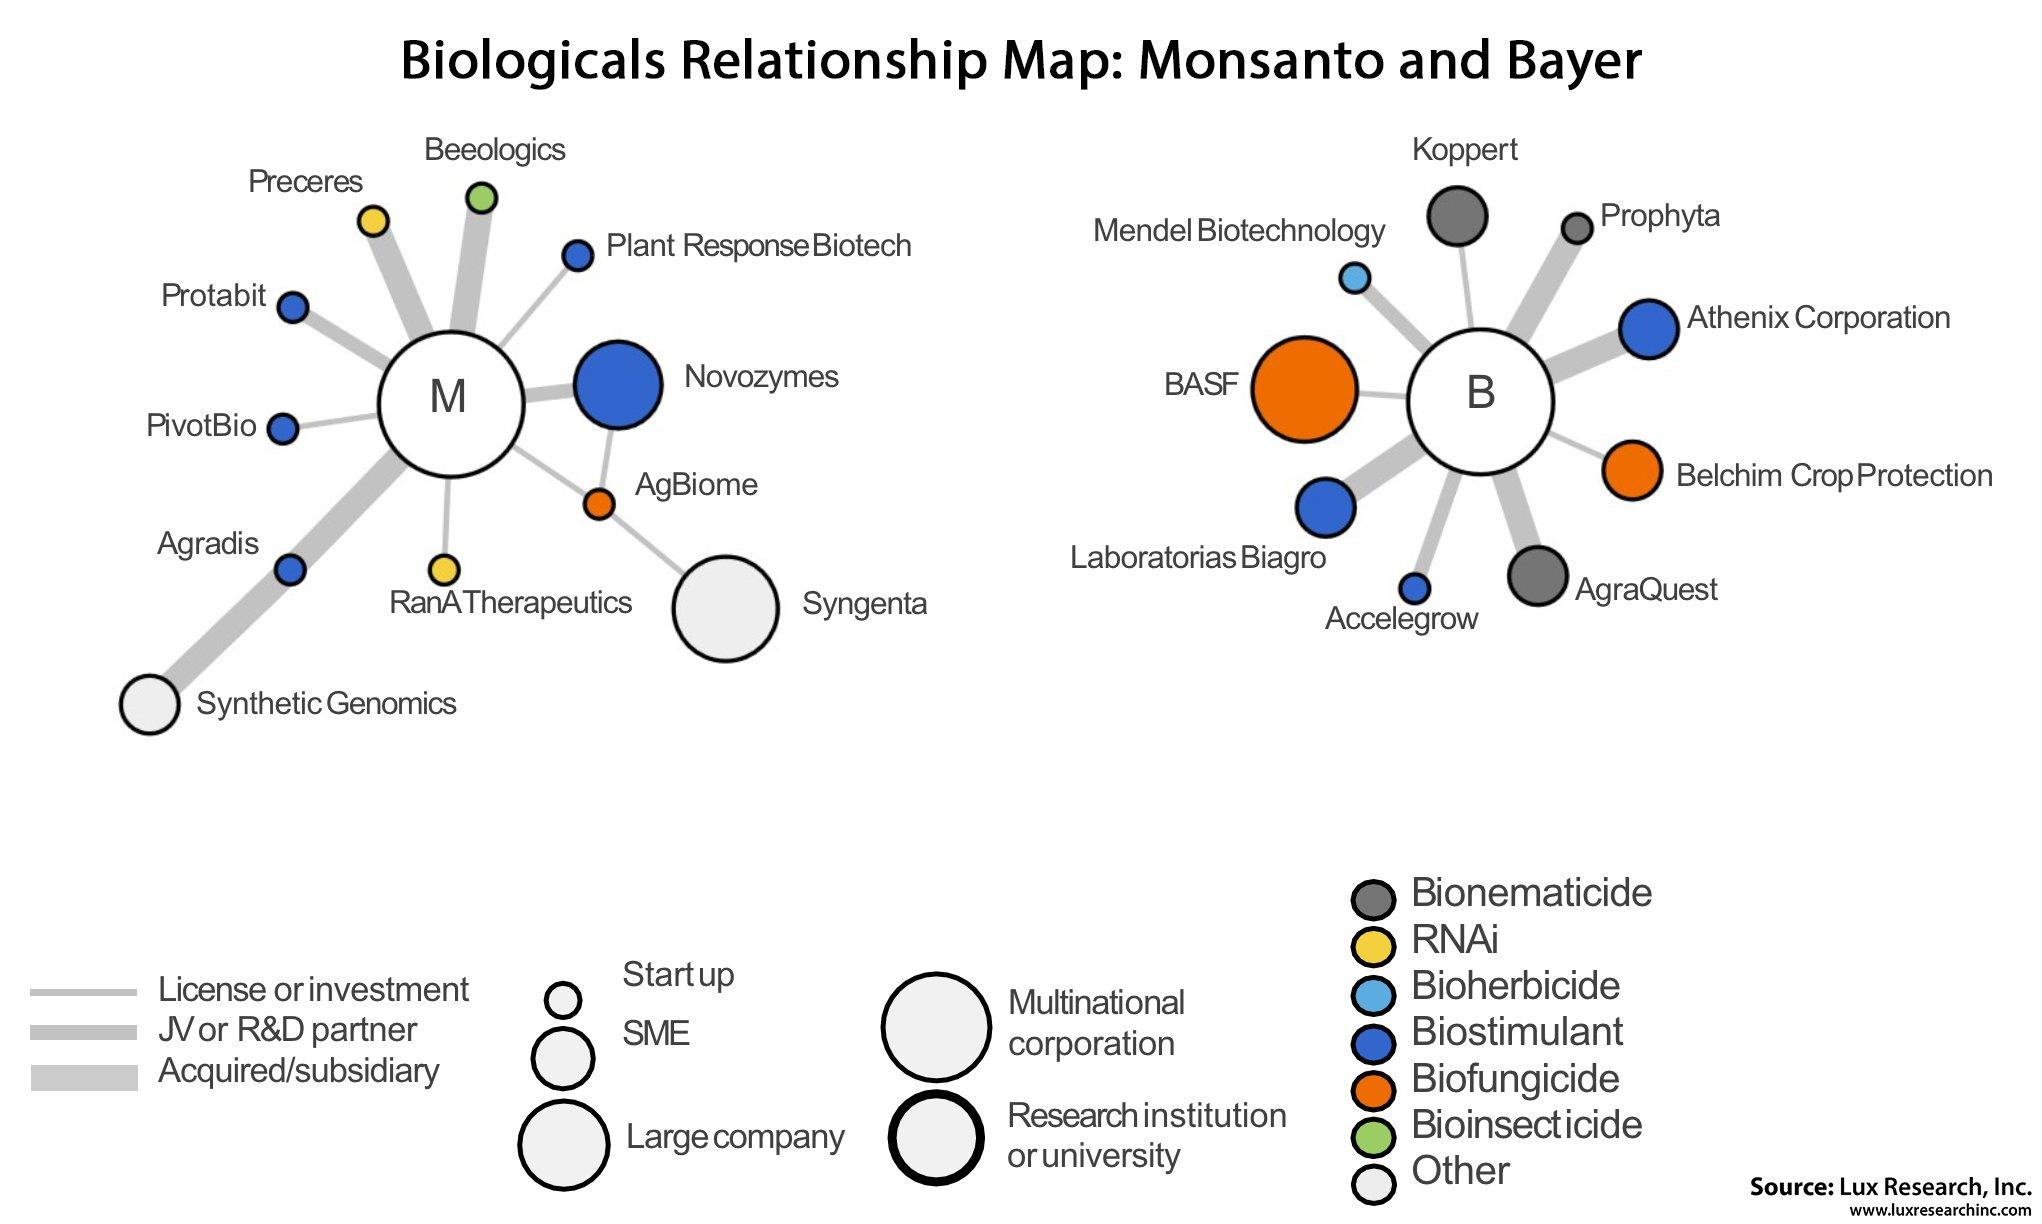 Partnerships And Ip Show Why Bayer Monsanto Merger Will Be A Winner